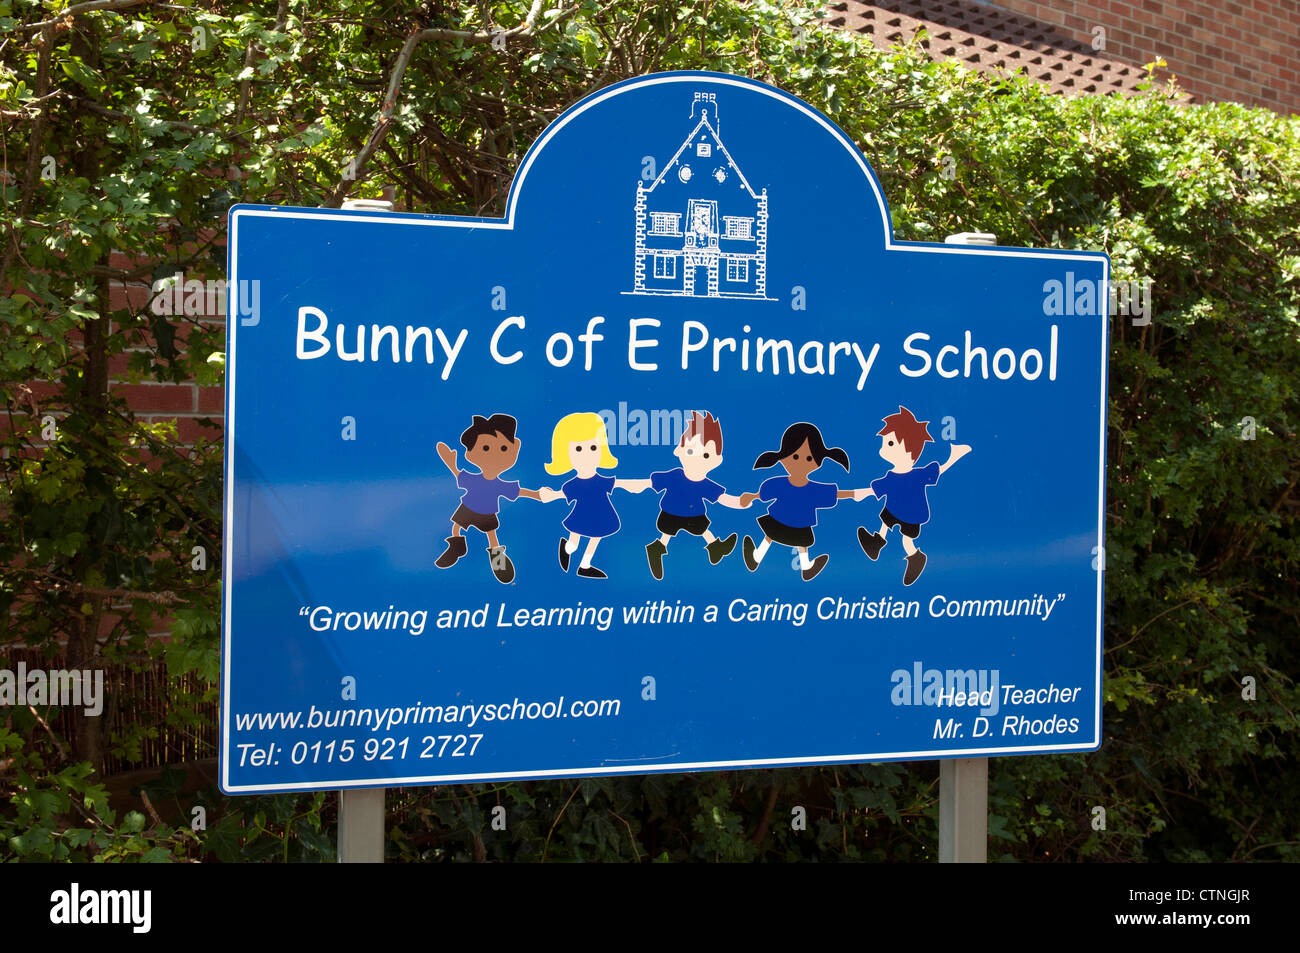 Primary School Sign, Bunny, Nottinghamshire, Uk Stock. Neighborhood Signs. Road French Signs Of Stroke. Severe Sepsis Signs. Bowel Loops Signs Of Stroke. Zeta Phi Beta Signs. Burmese Signs Of Stroke. Anxiety Signs Of Stroke. Label Signs Of Stroke